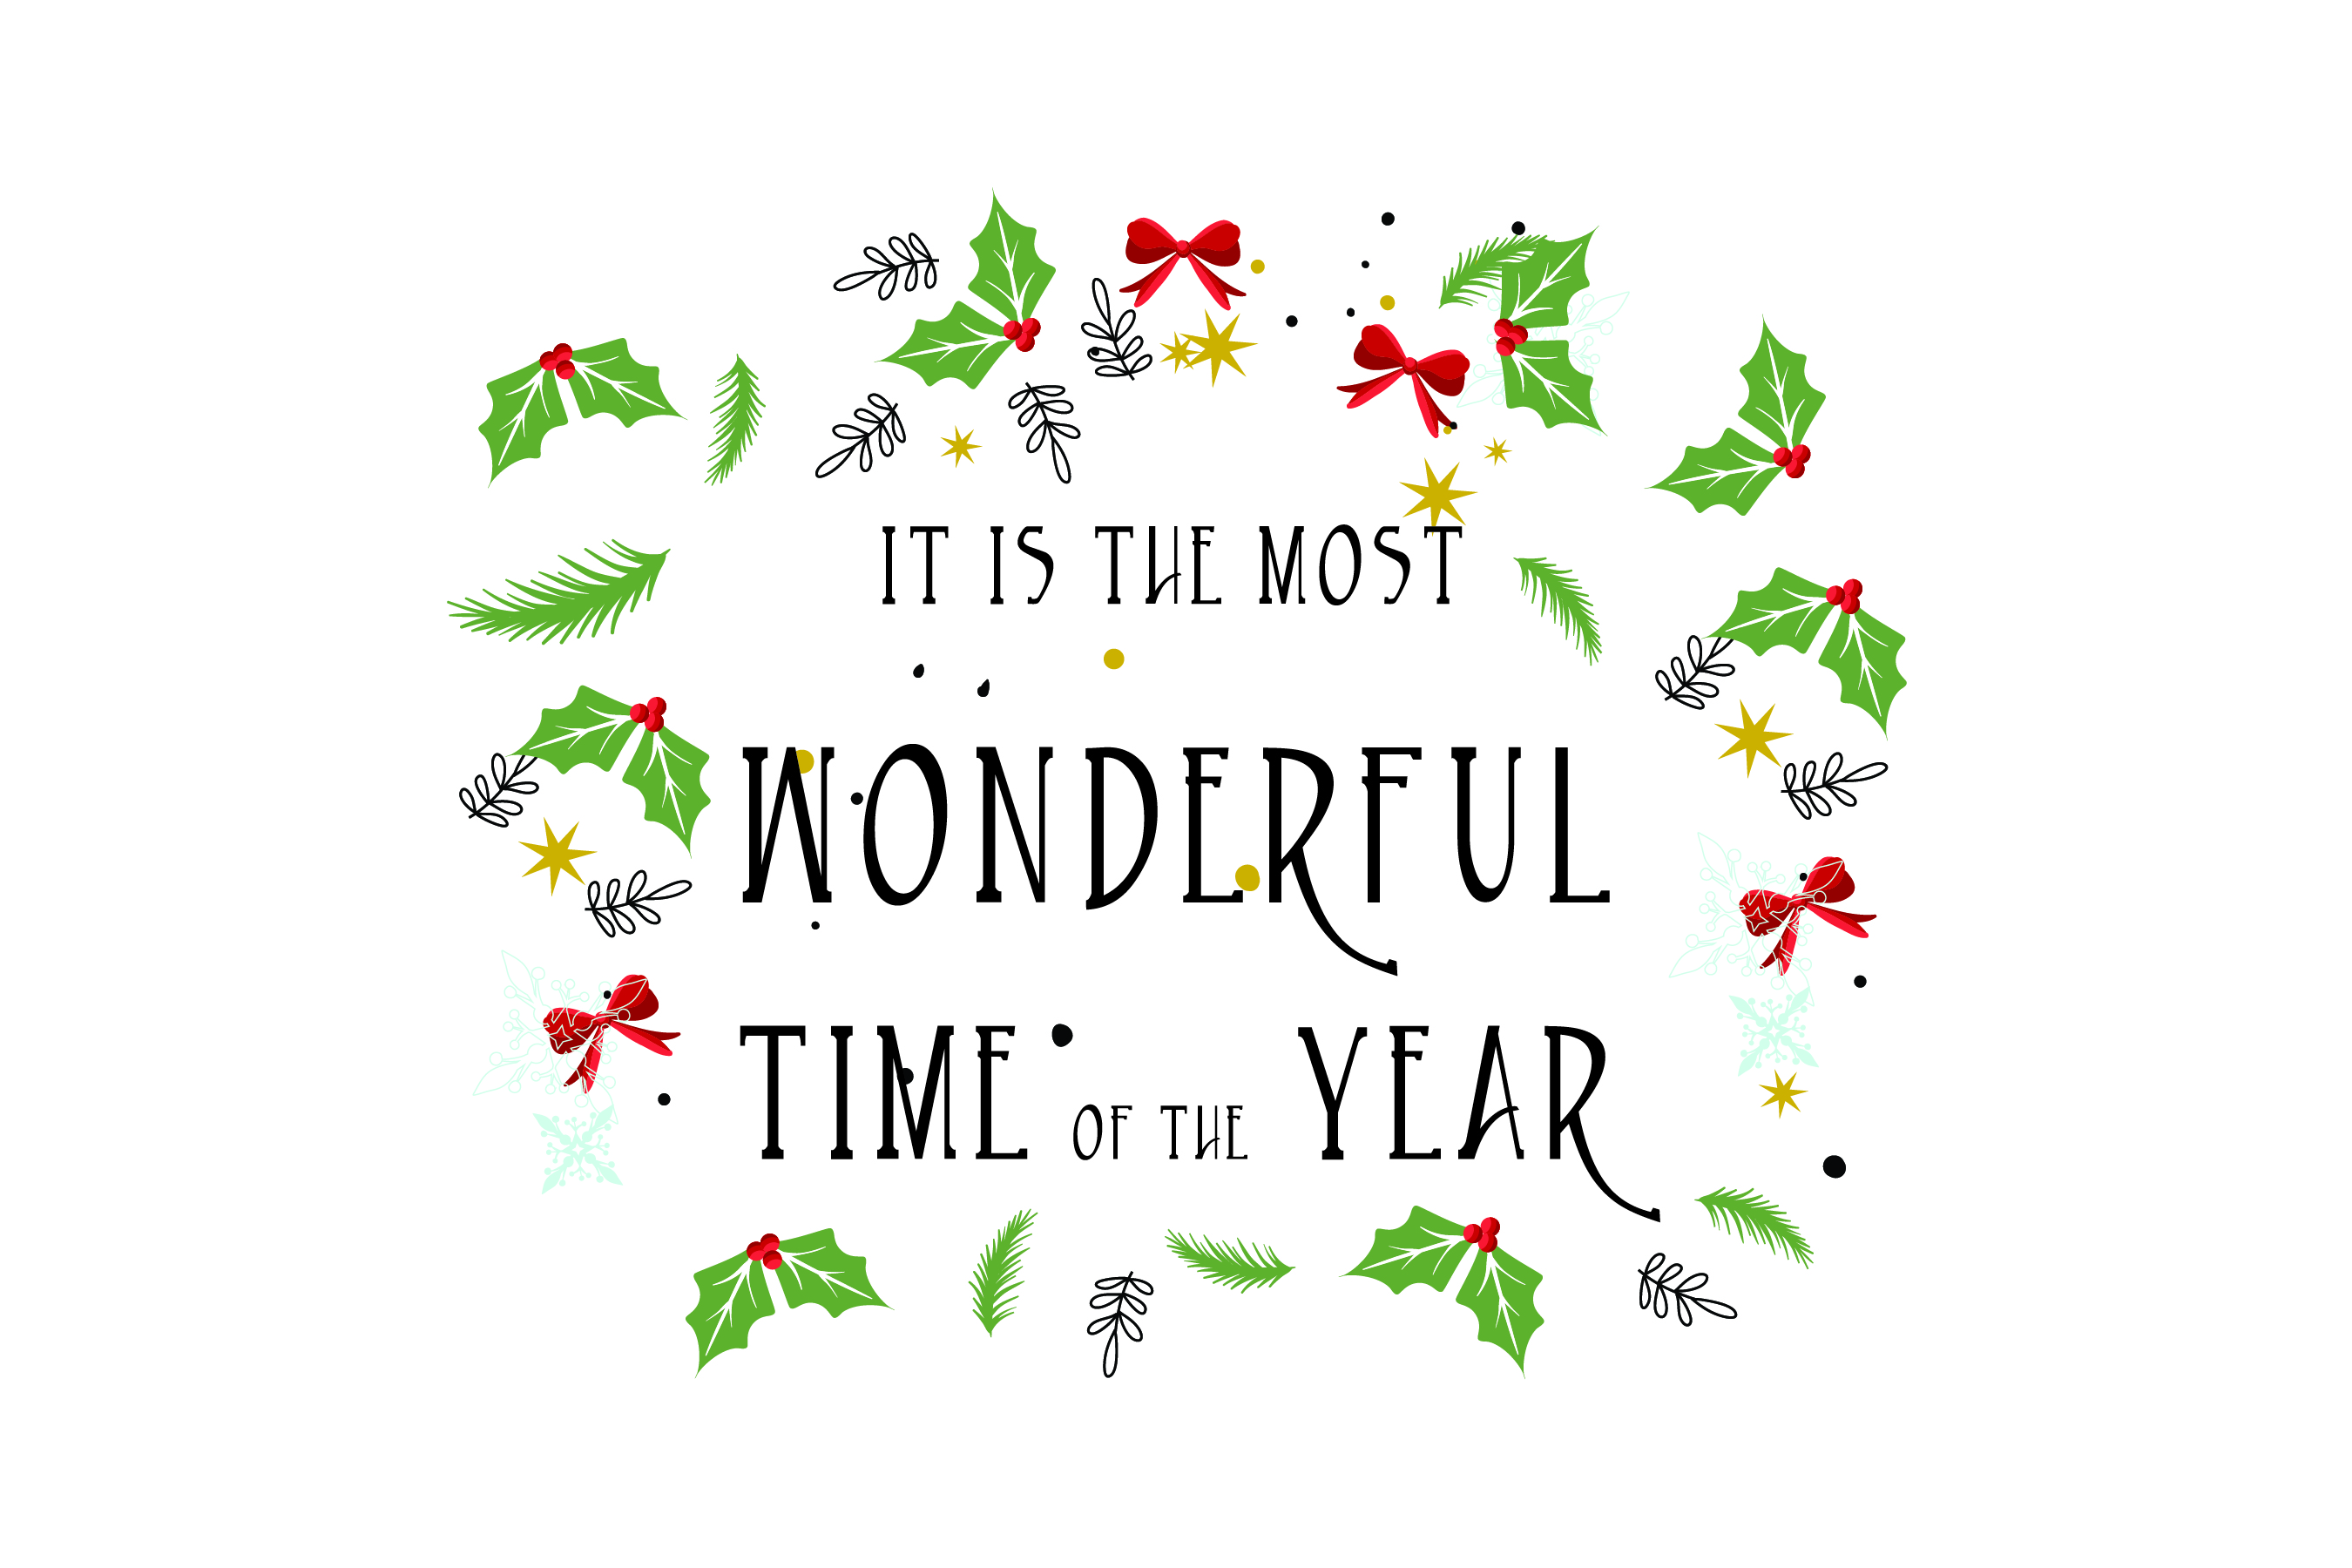 Wonderful time of the year - SVG Bundle 16 Designs example image 2